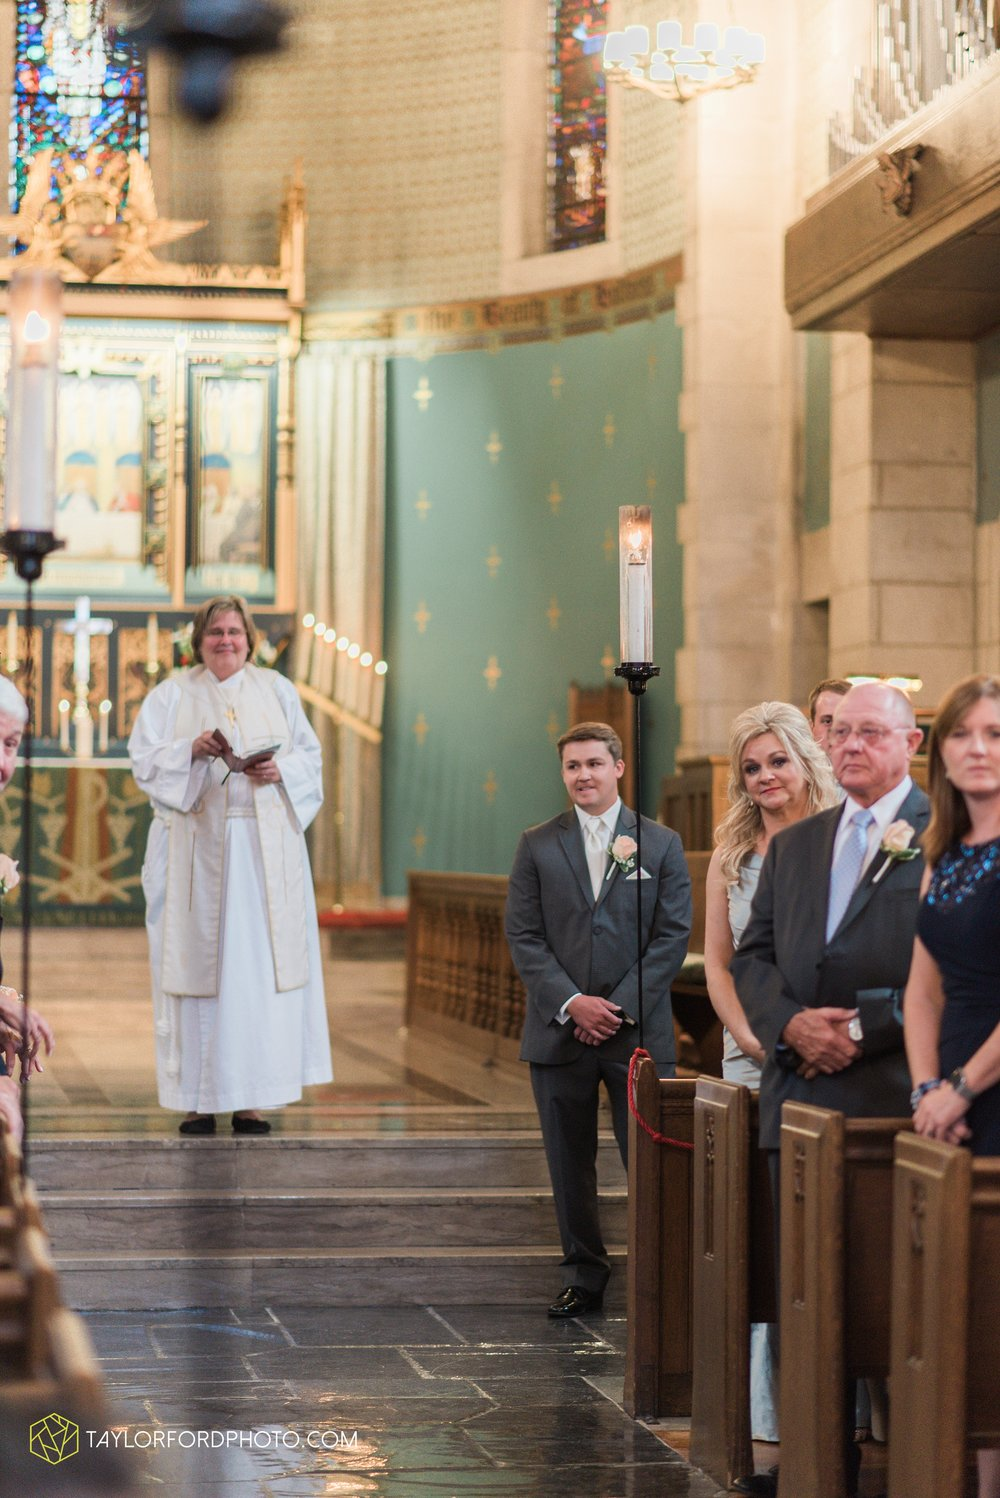 ford-wayne-indiana-trinity-lutheran-church-becca-connor-bonnell-taylor-ford-wedding-photography_0035.jpg